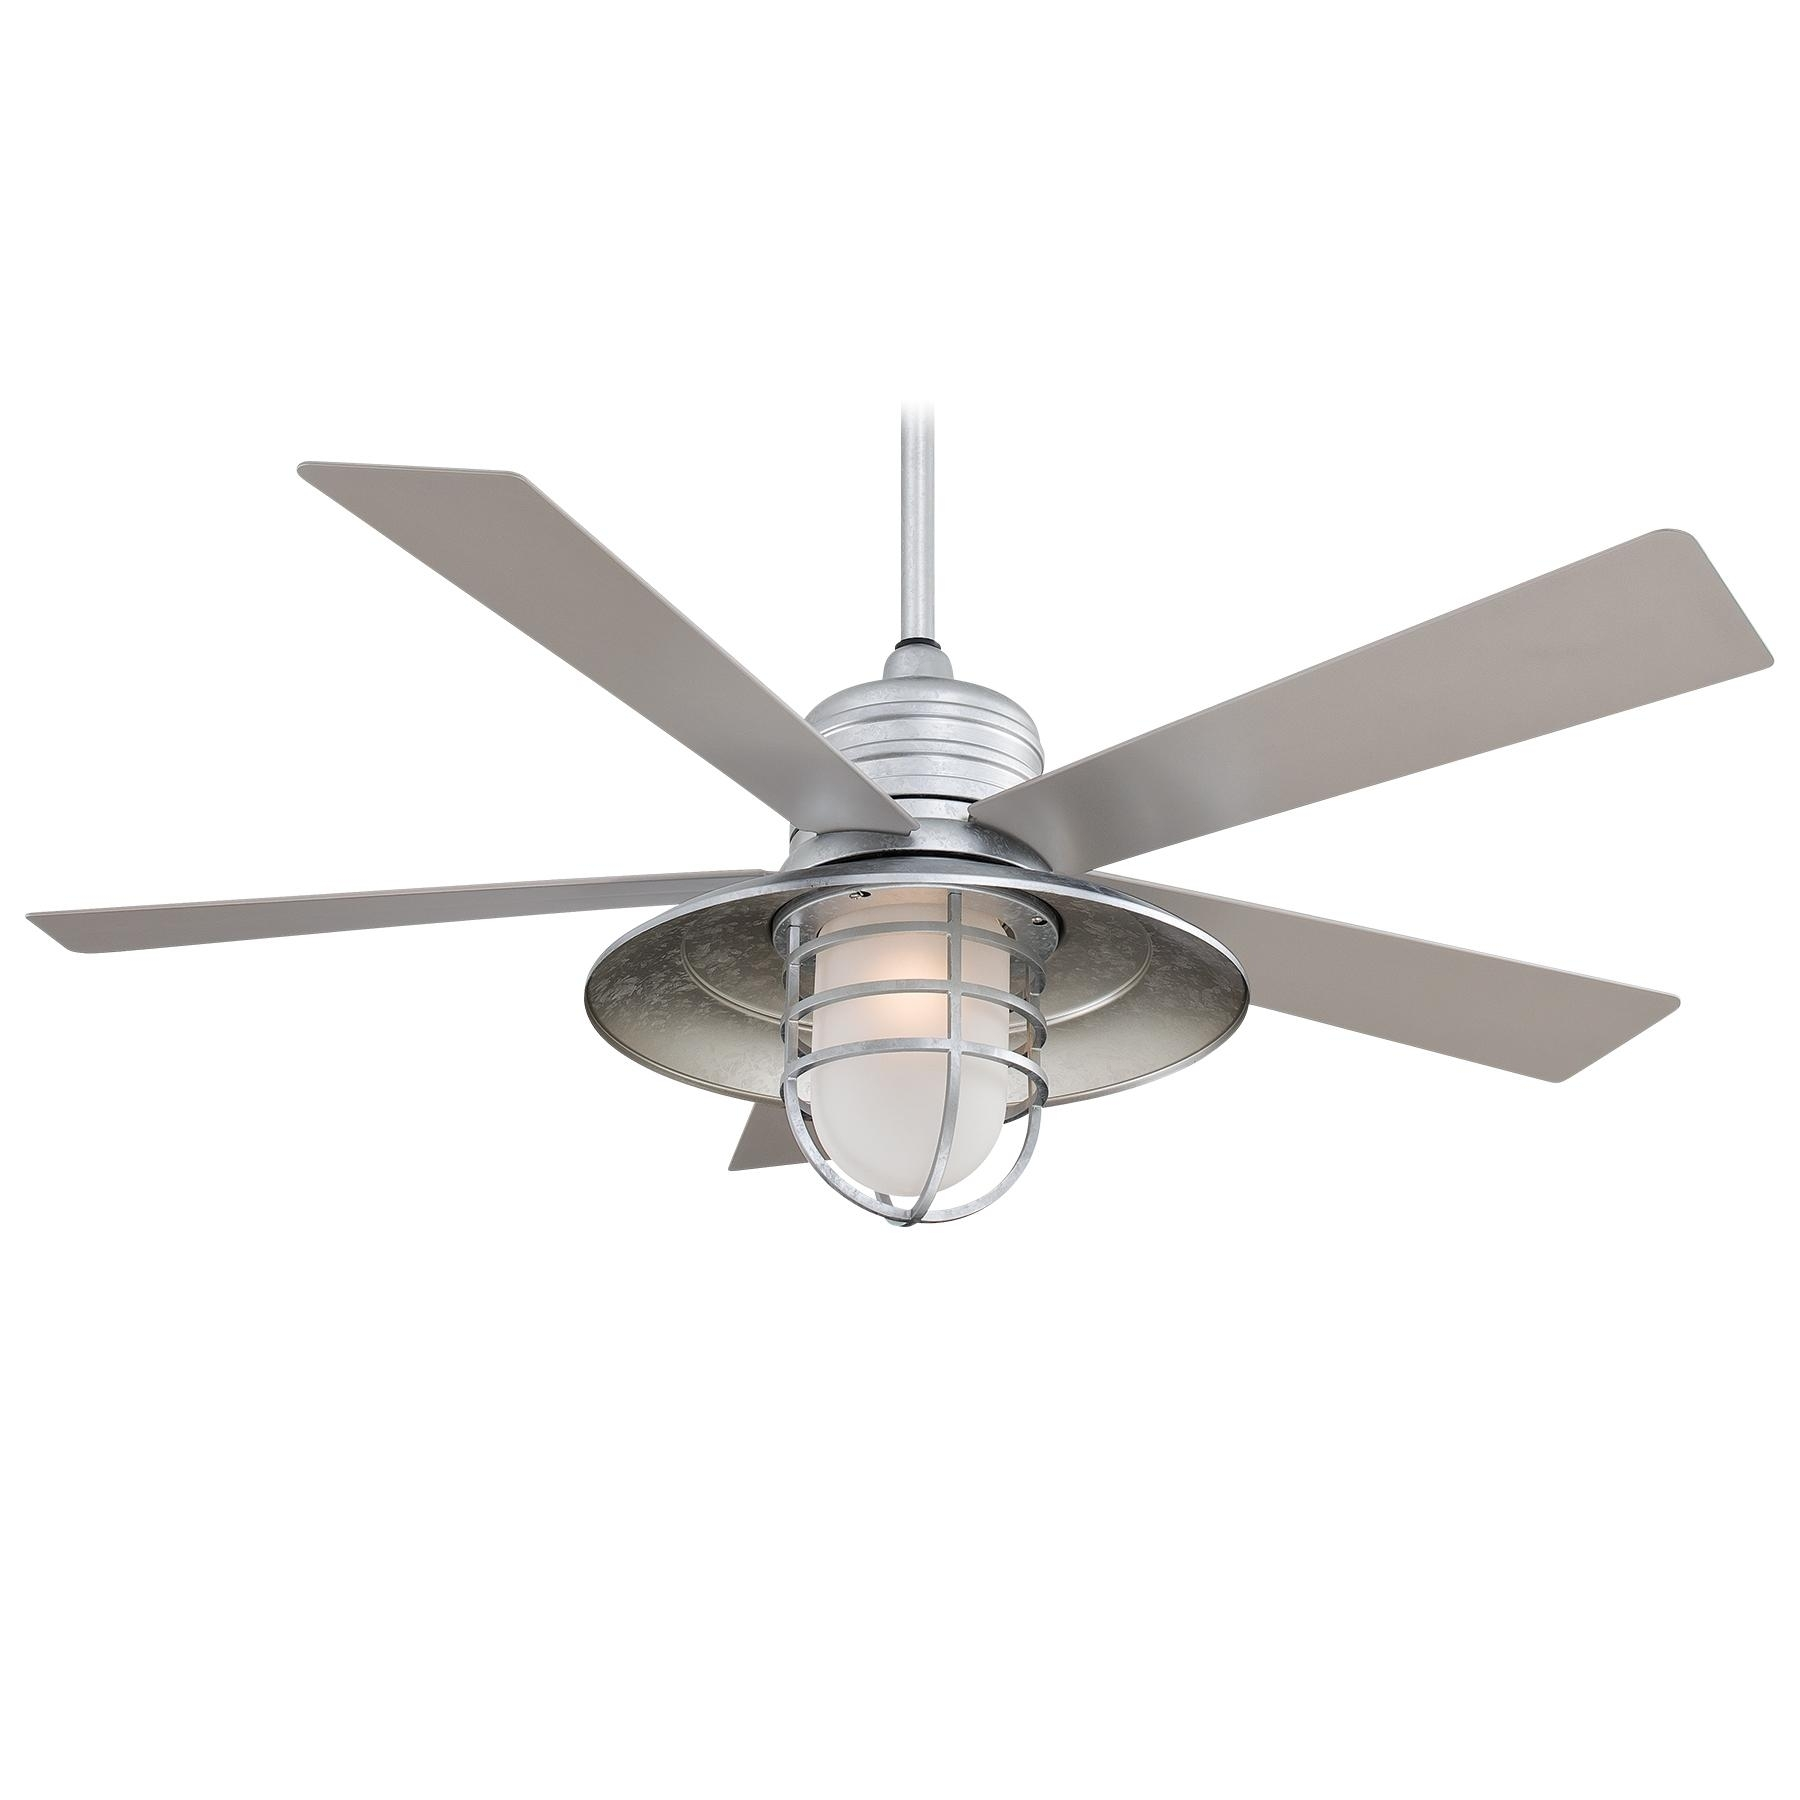 Popular Photo of Outdoor Ceiling Fans With Bright Lights